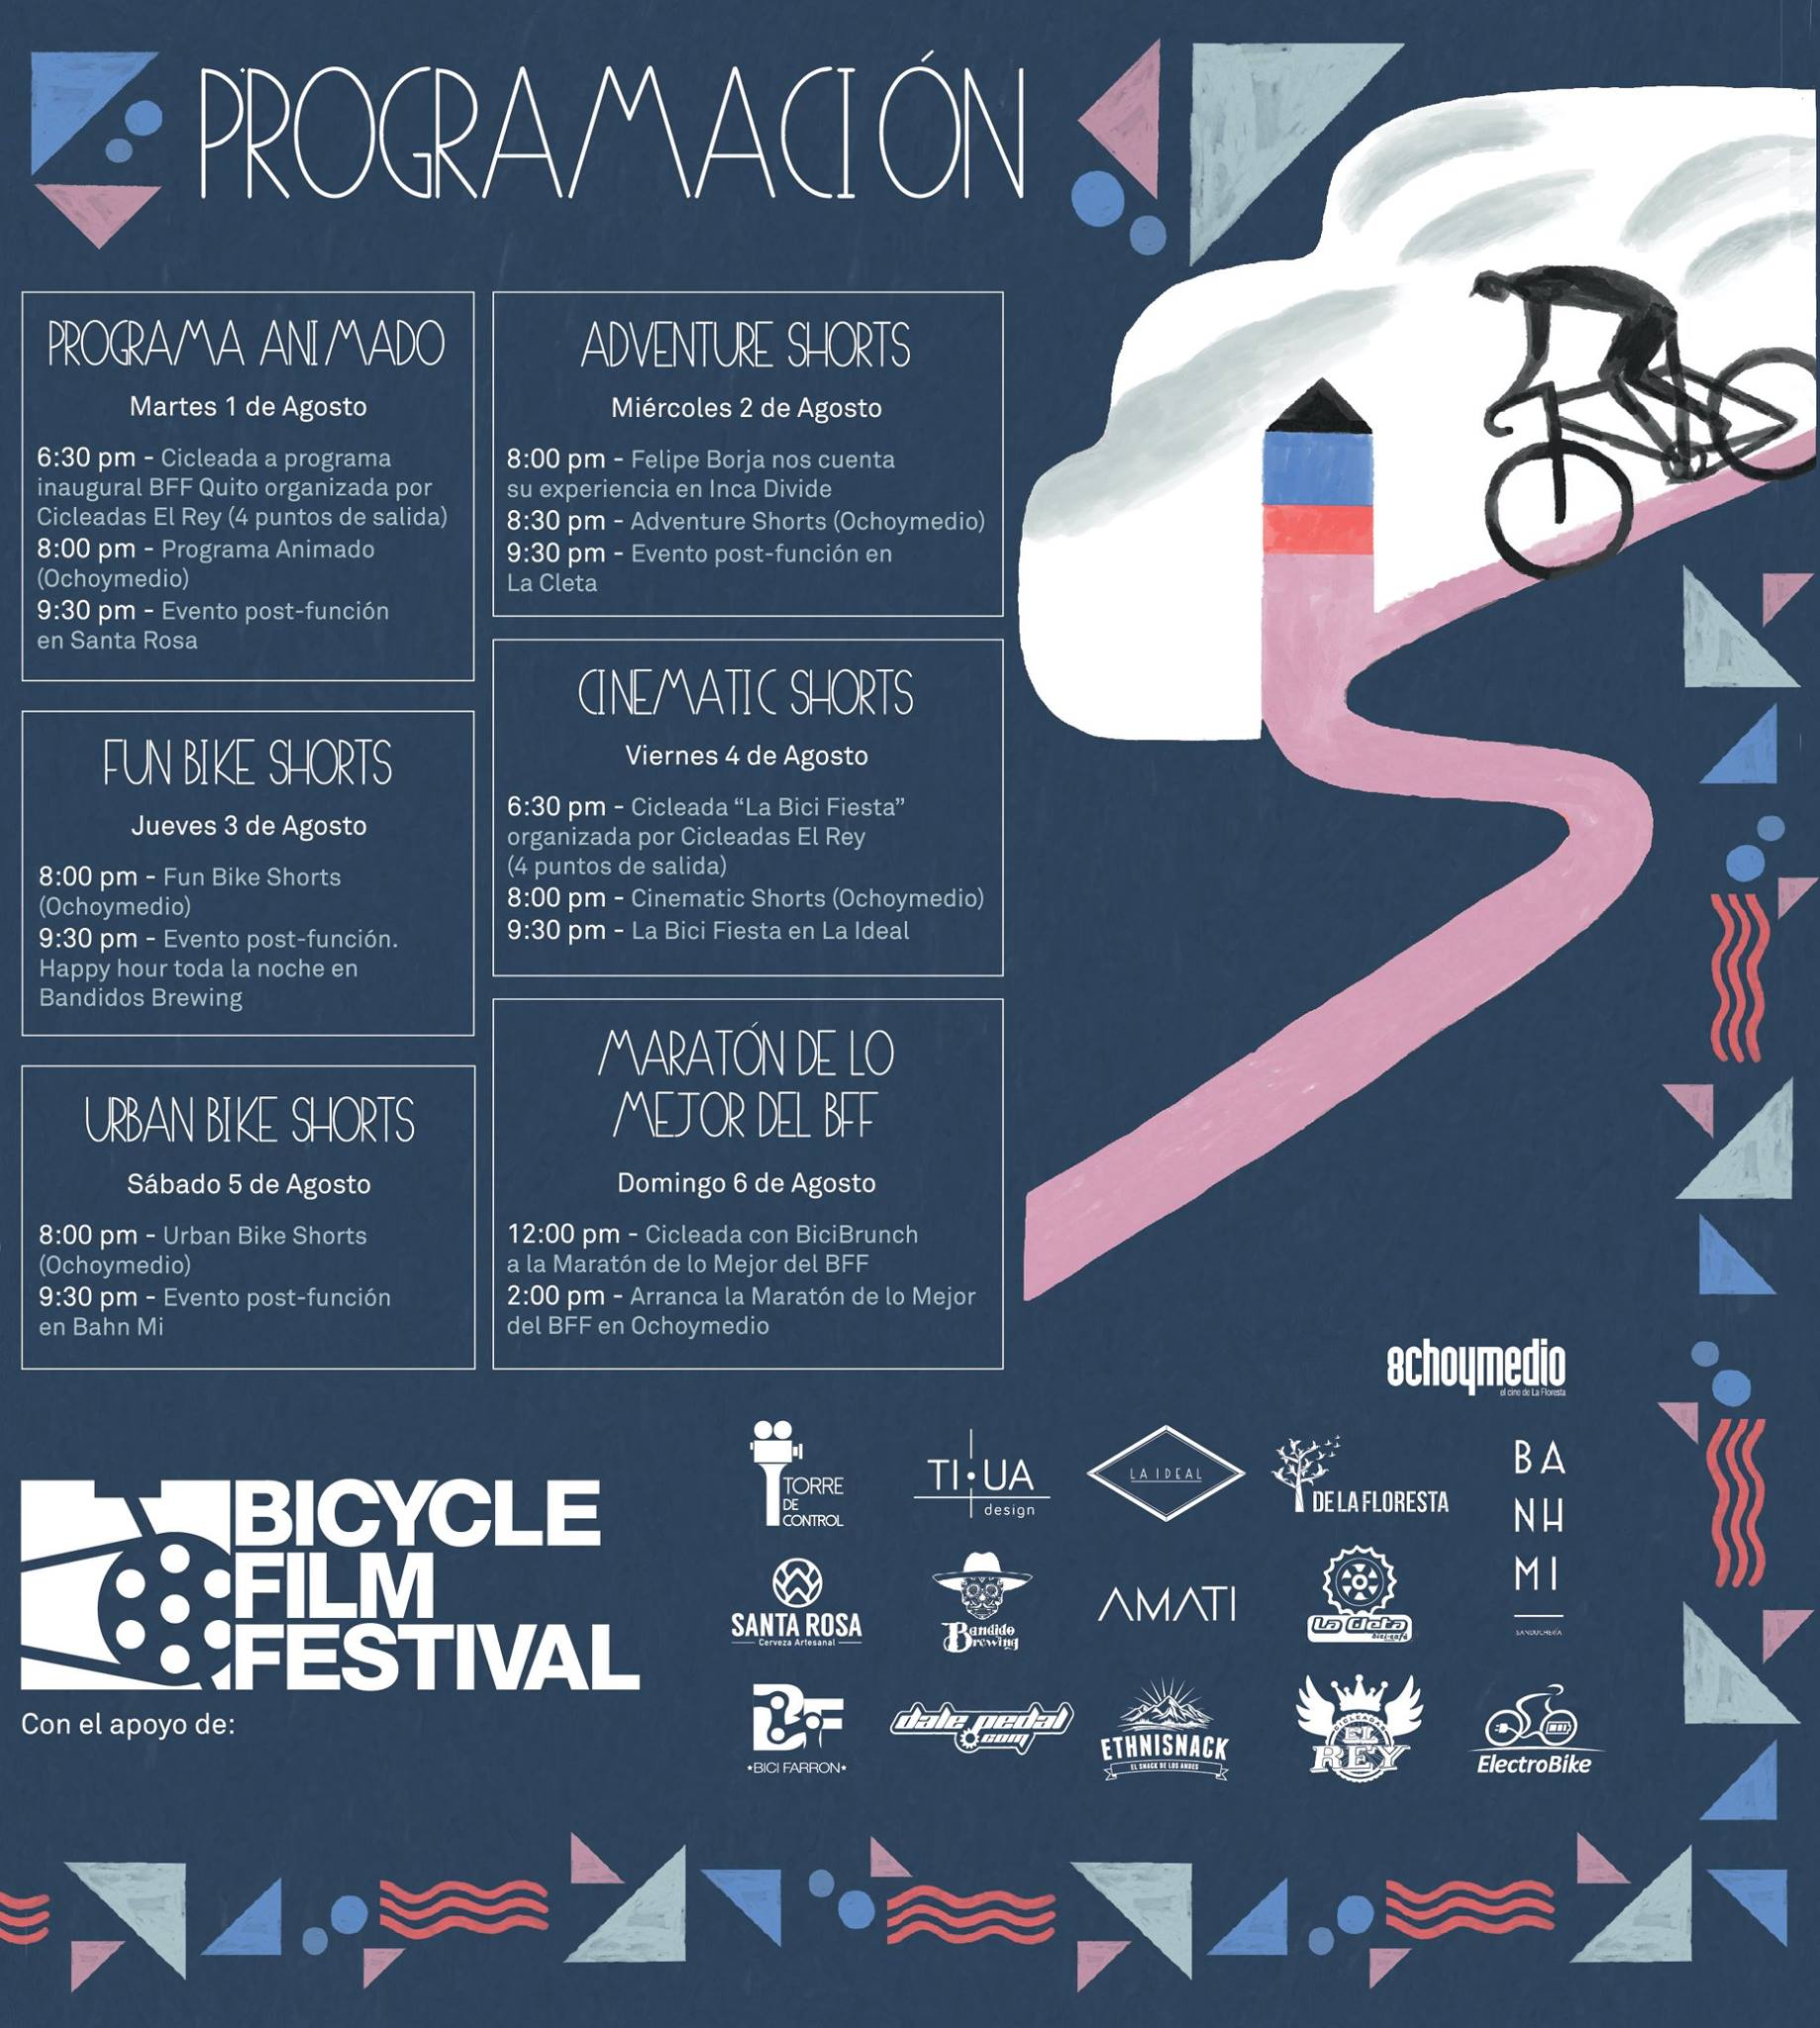 saga-sports-arts-saga-creativa-bicycle-film-festival